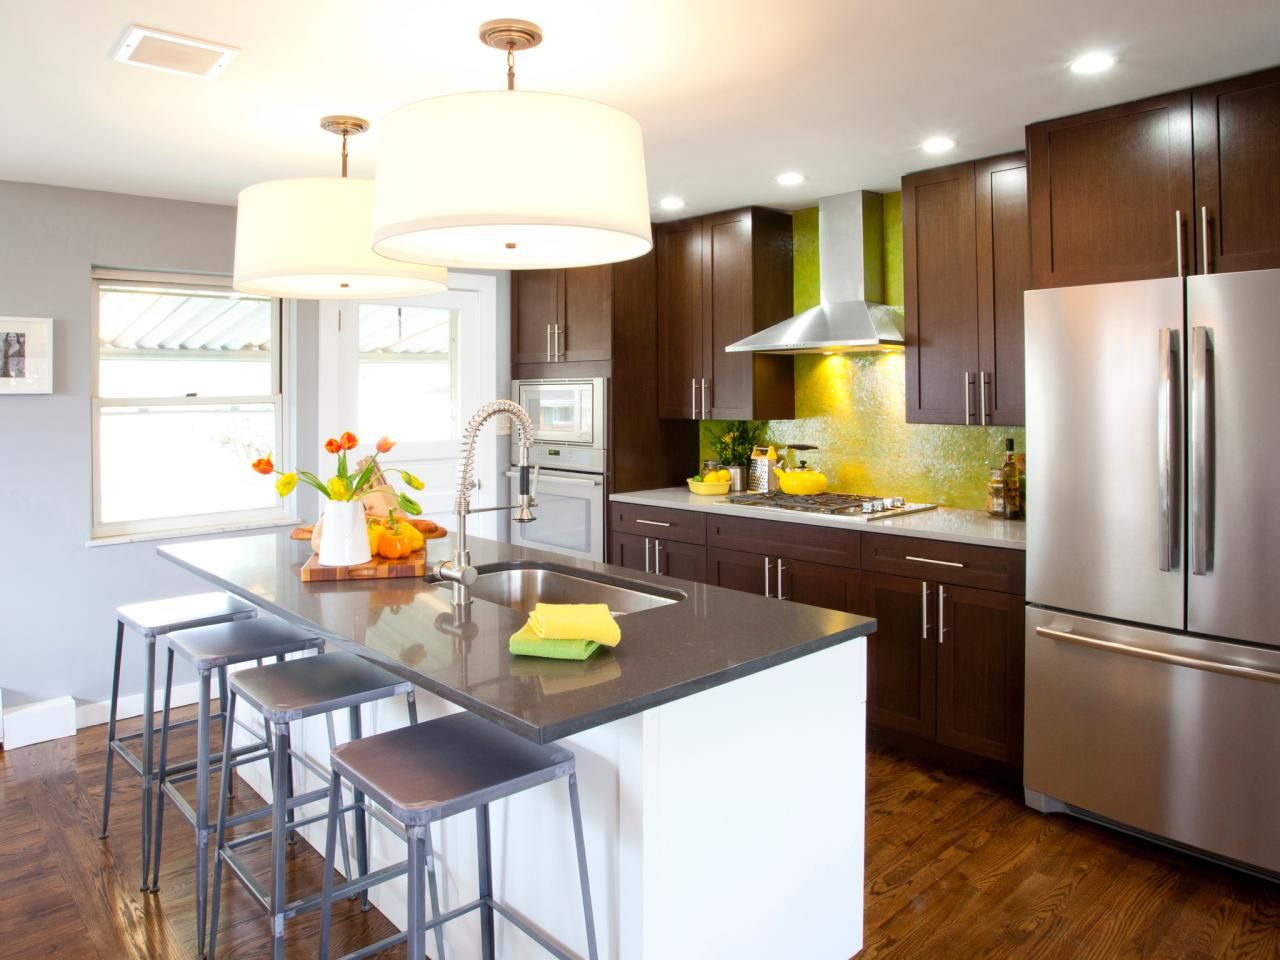 Best Kitchen Countertop Pictures: Color & Material Ideas